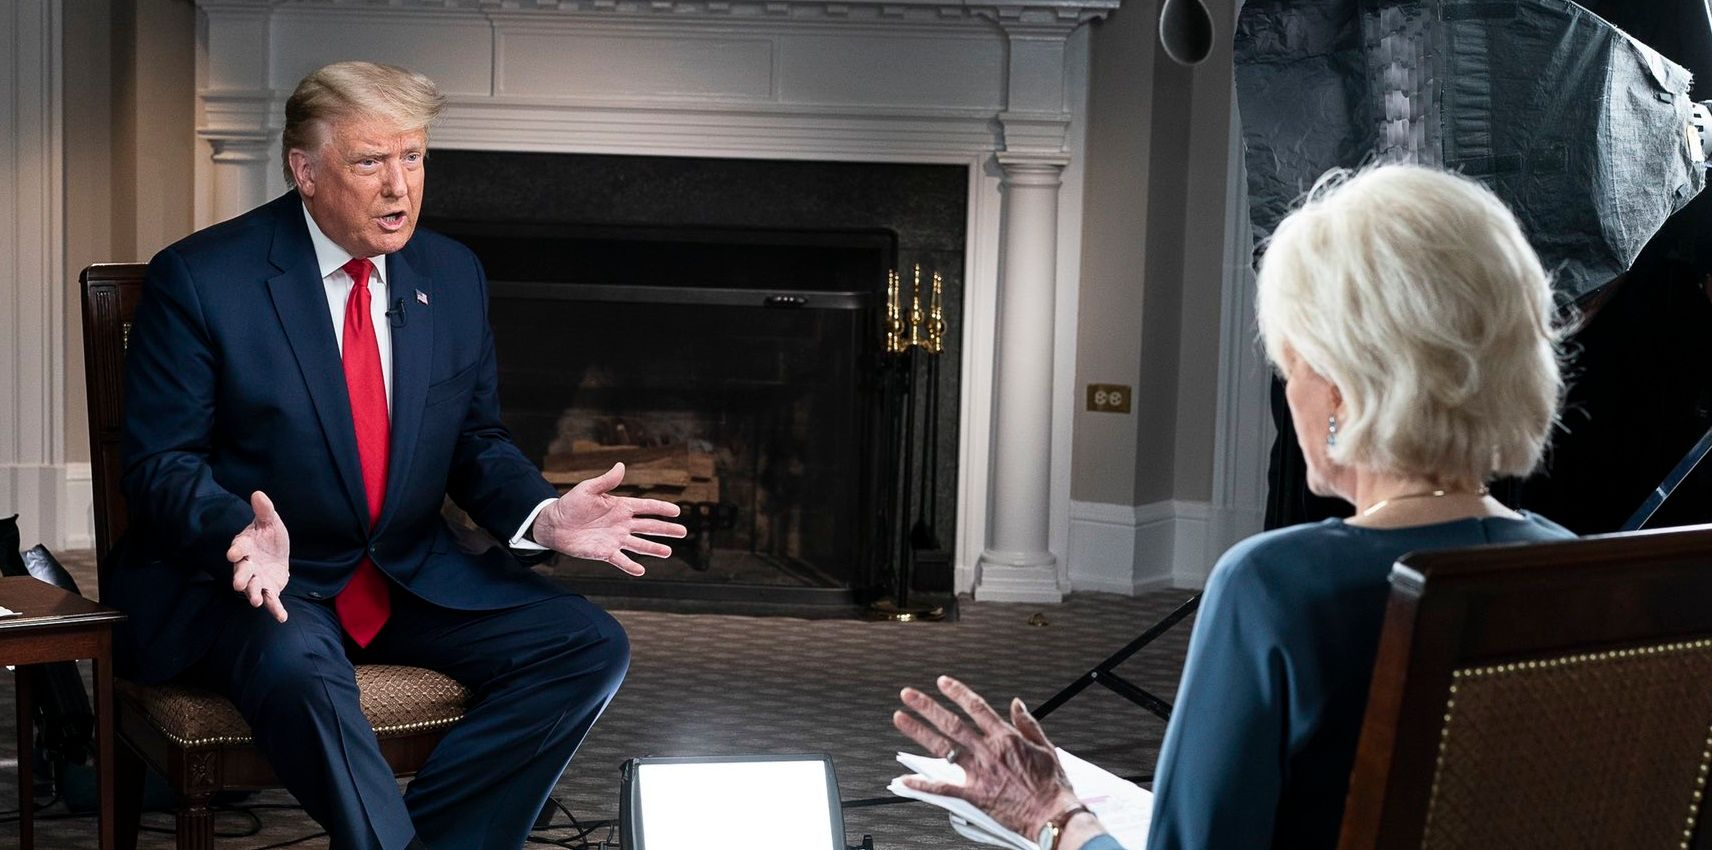 BREAKING: Trump releases behind the scenes 60 Minutes video, claims CBS is full of 'bias' and 'hatred'